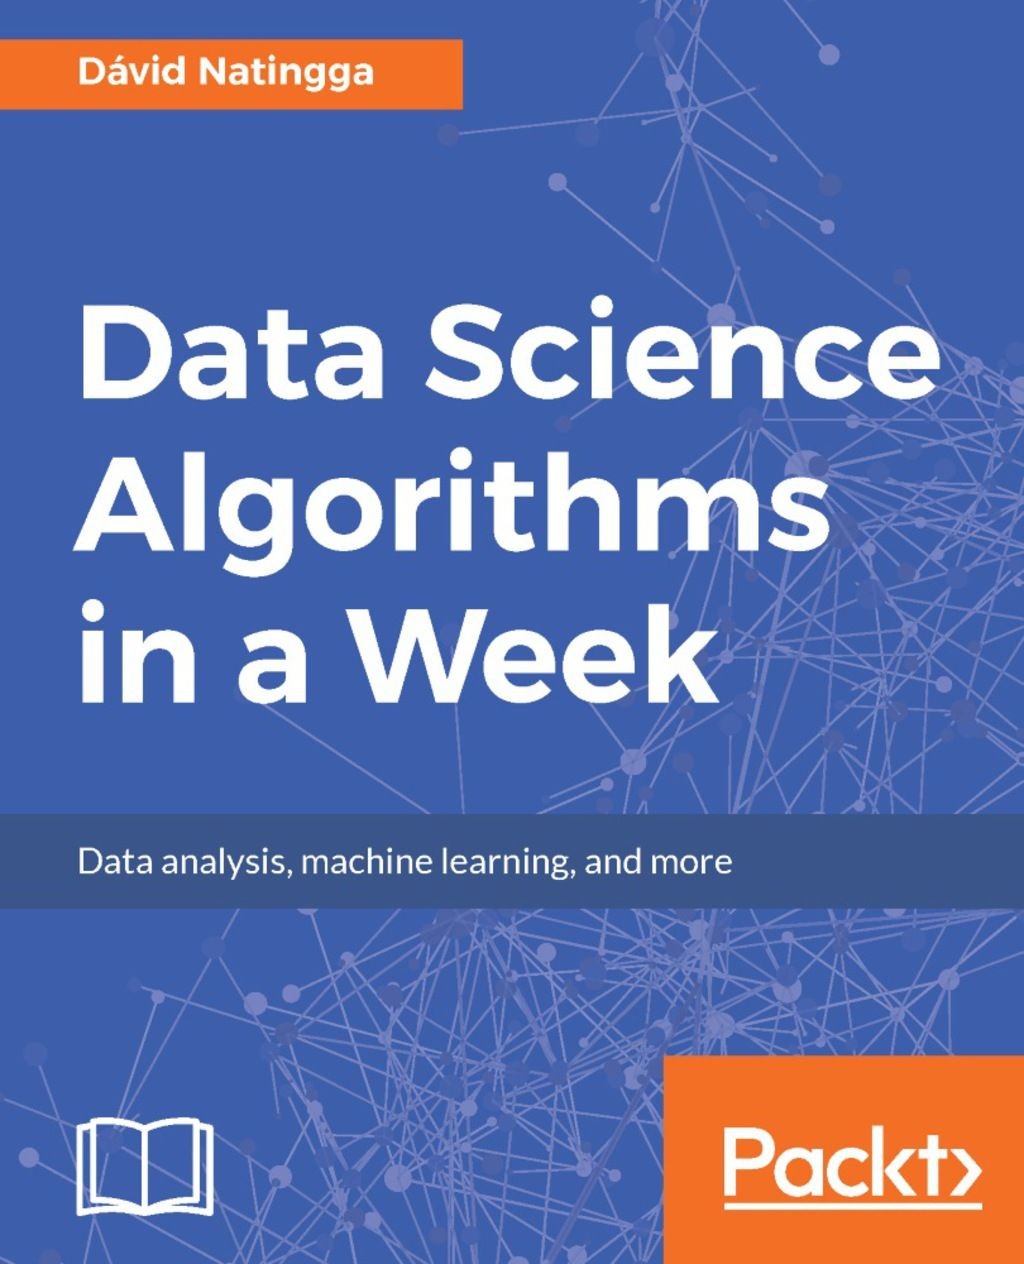 Data Science Algorithms in a Week (eBook) in 2019 | Products | Data